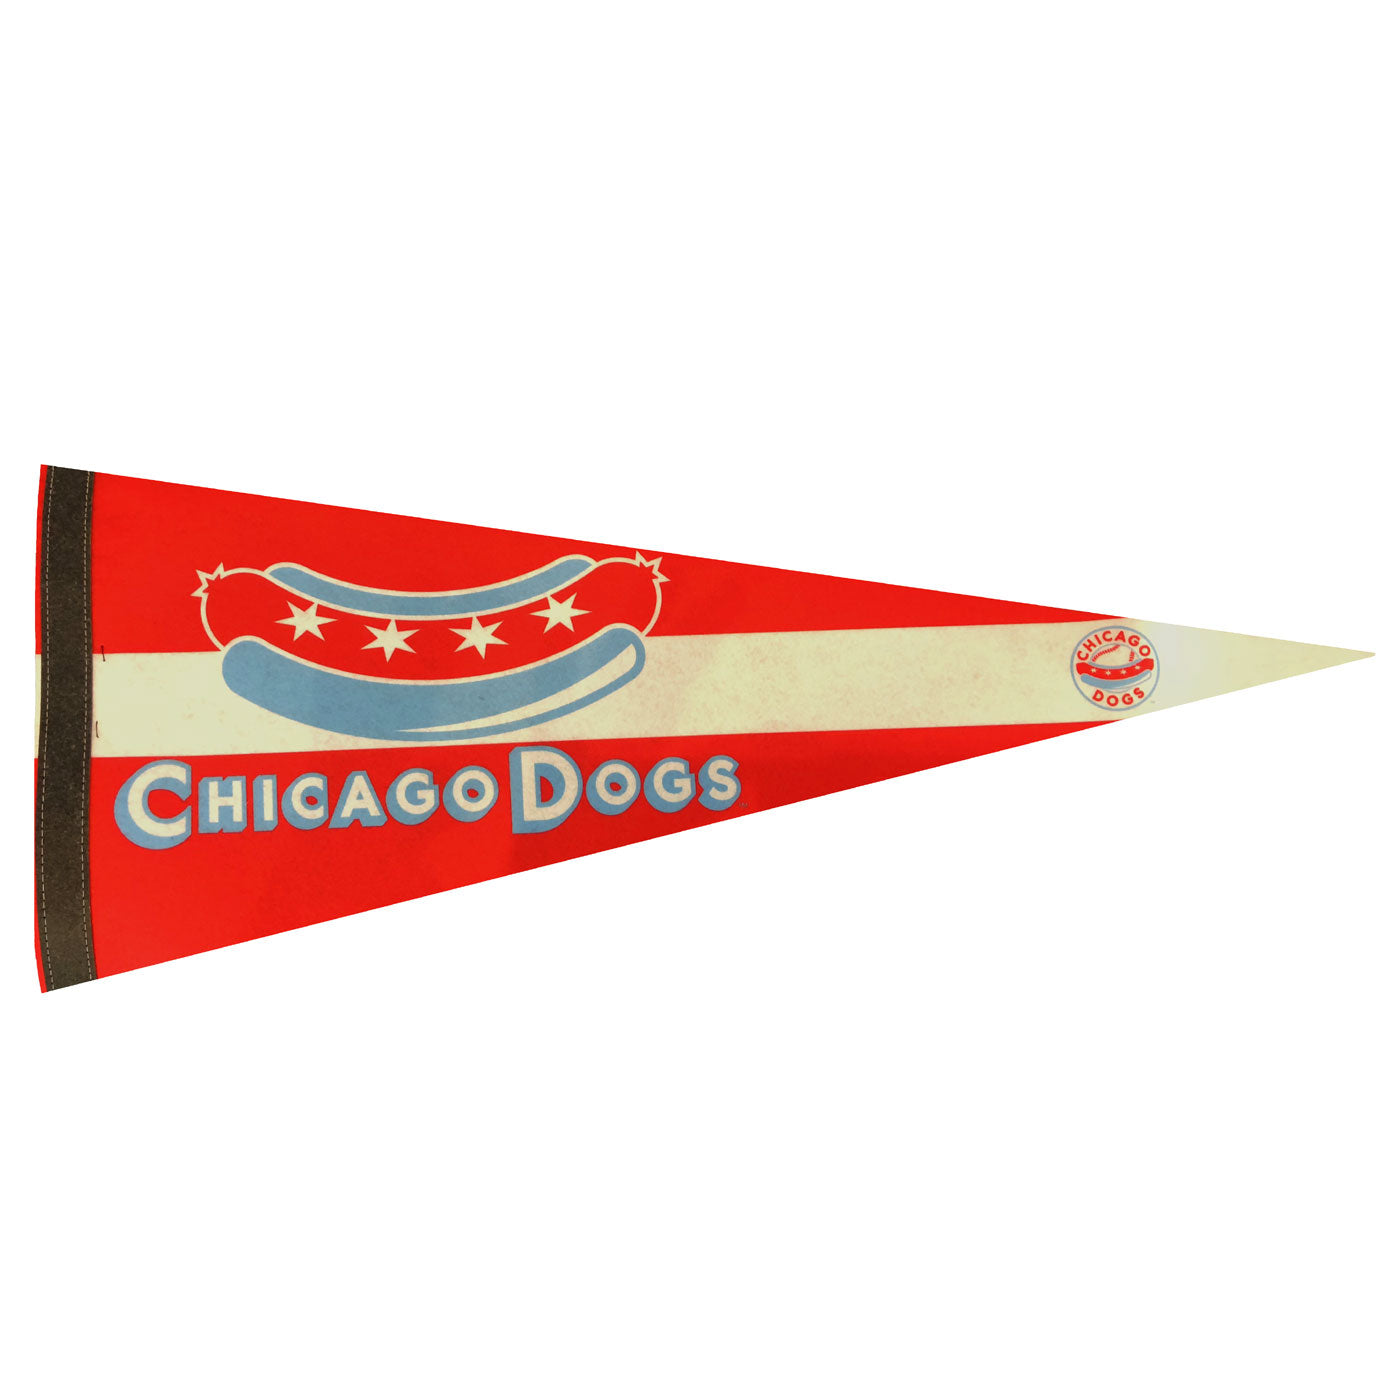 Chicago Dogs WinCraft 12x30 Premium Felt Pennant - Chicago Dogs Team Store